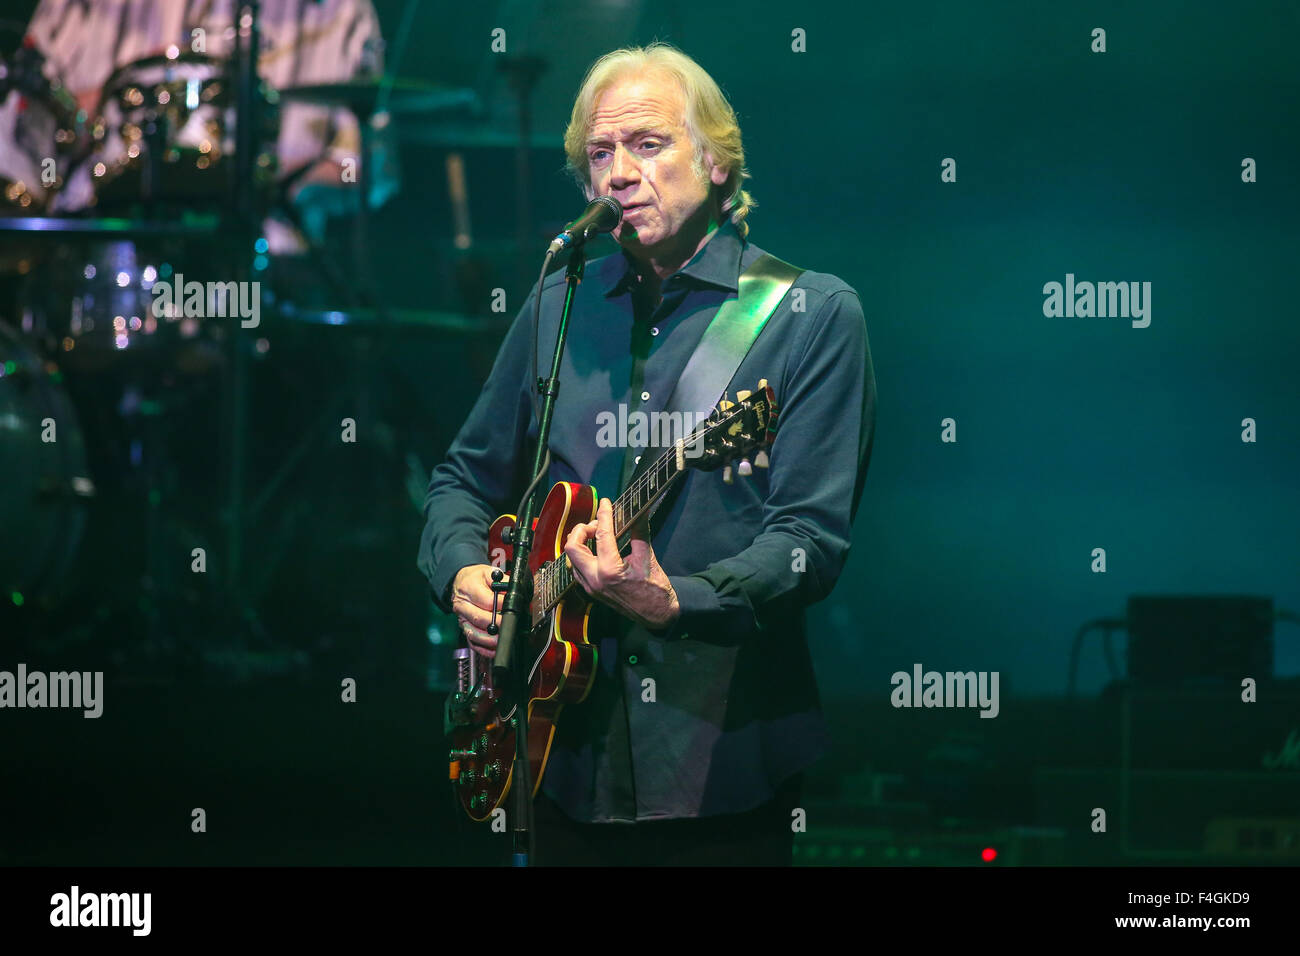 THE MOODY BLUES bring their 2014 Tour to the Durham